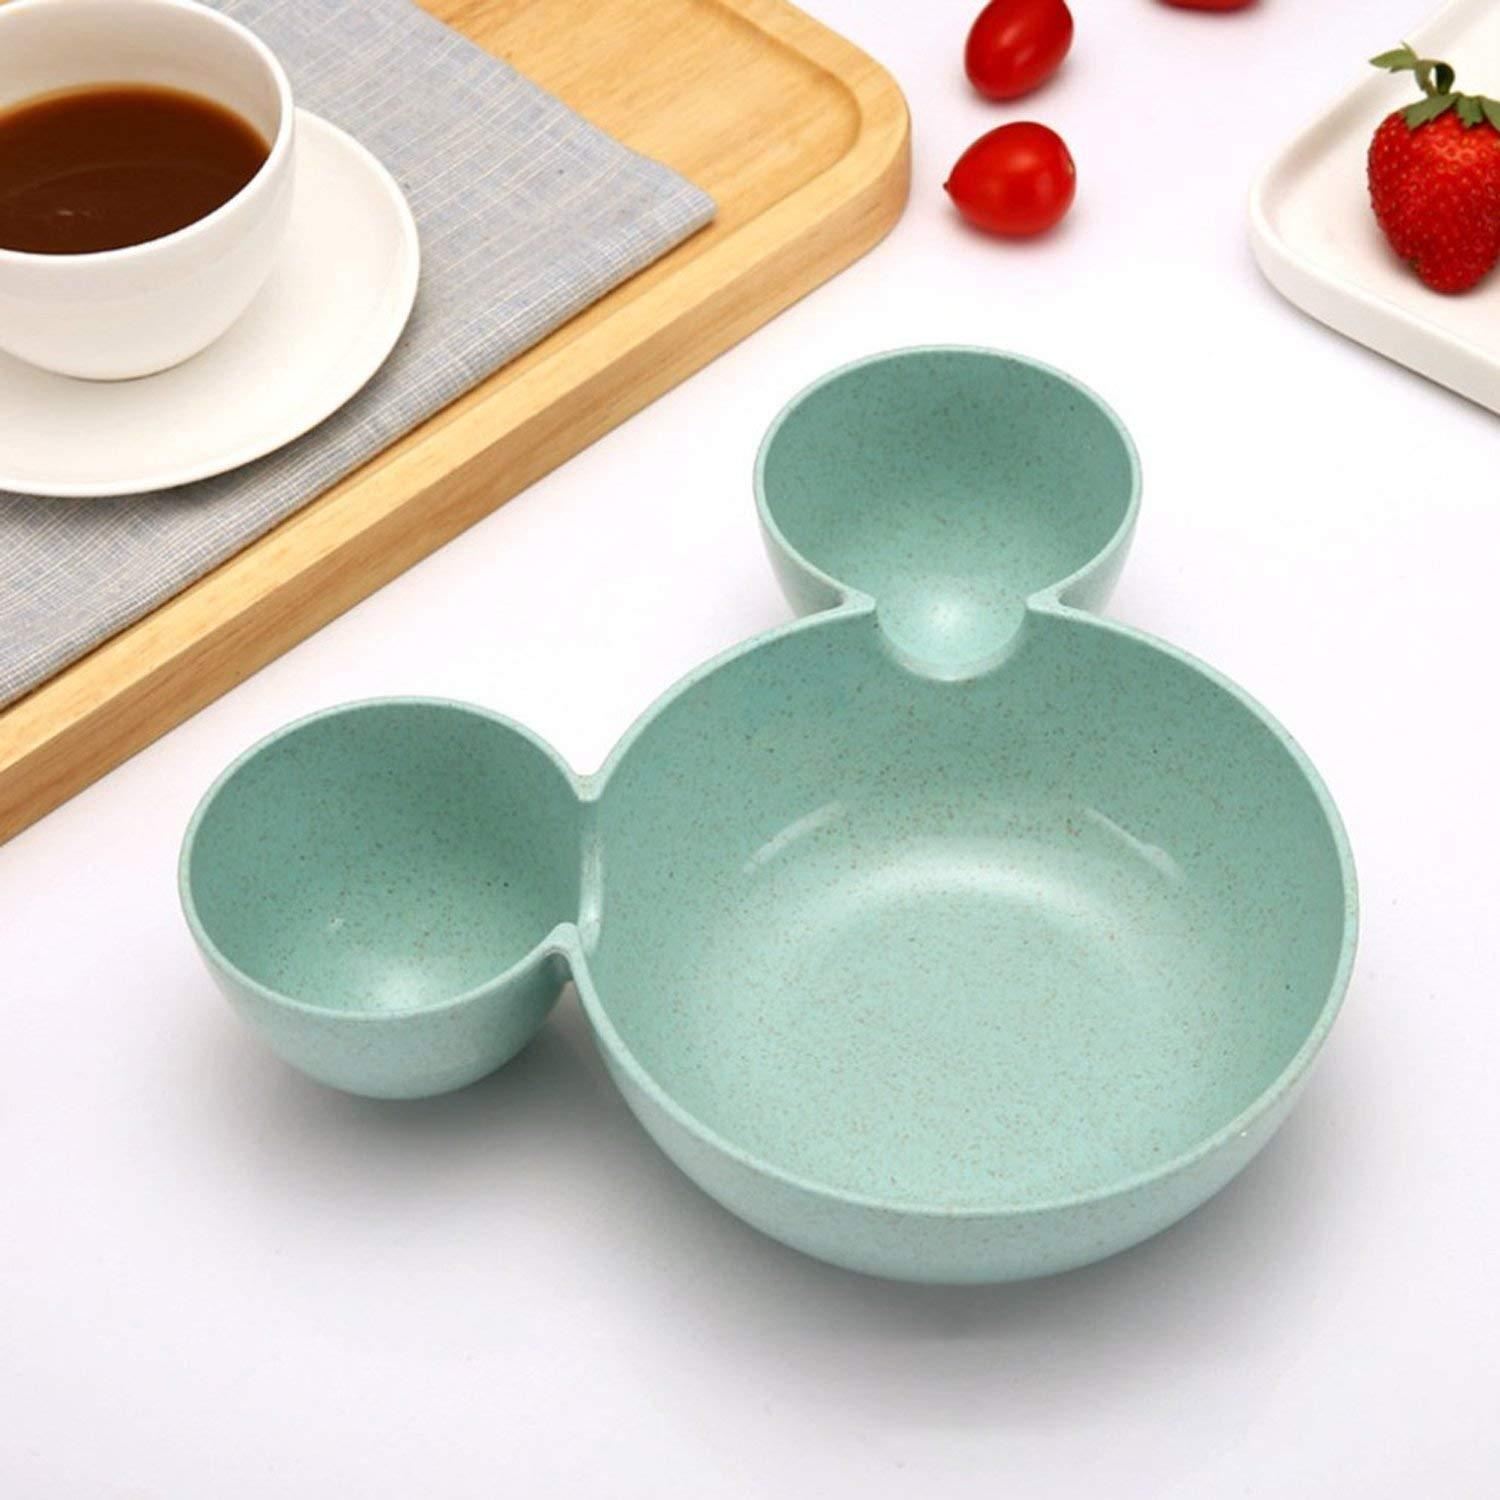 0843 Mickey Shaped Kids/Snack Serving Sectioned Plate -